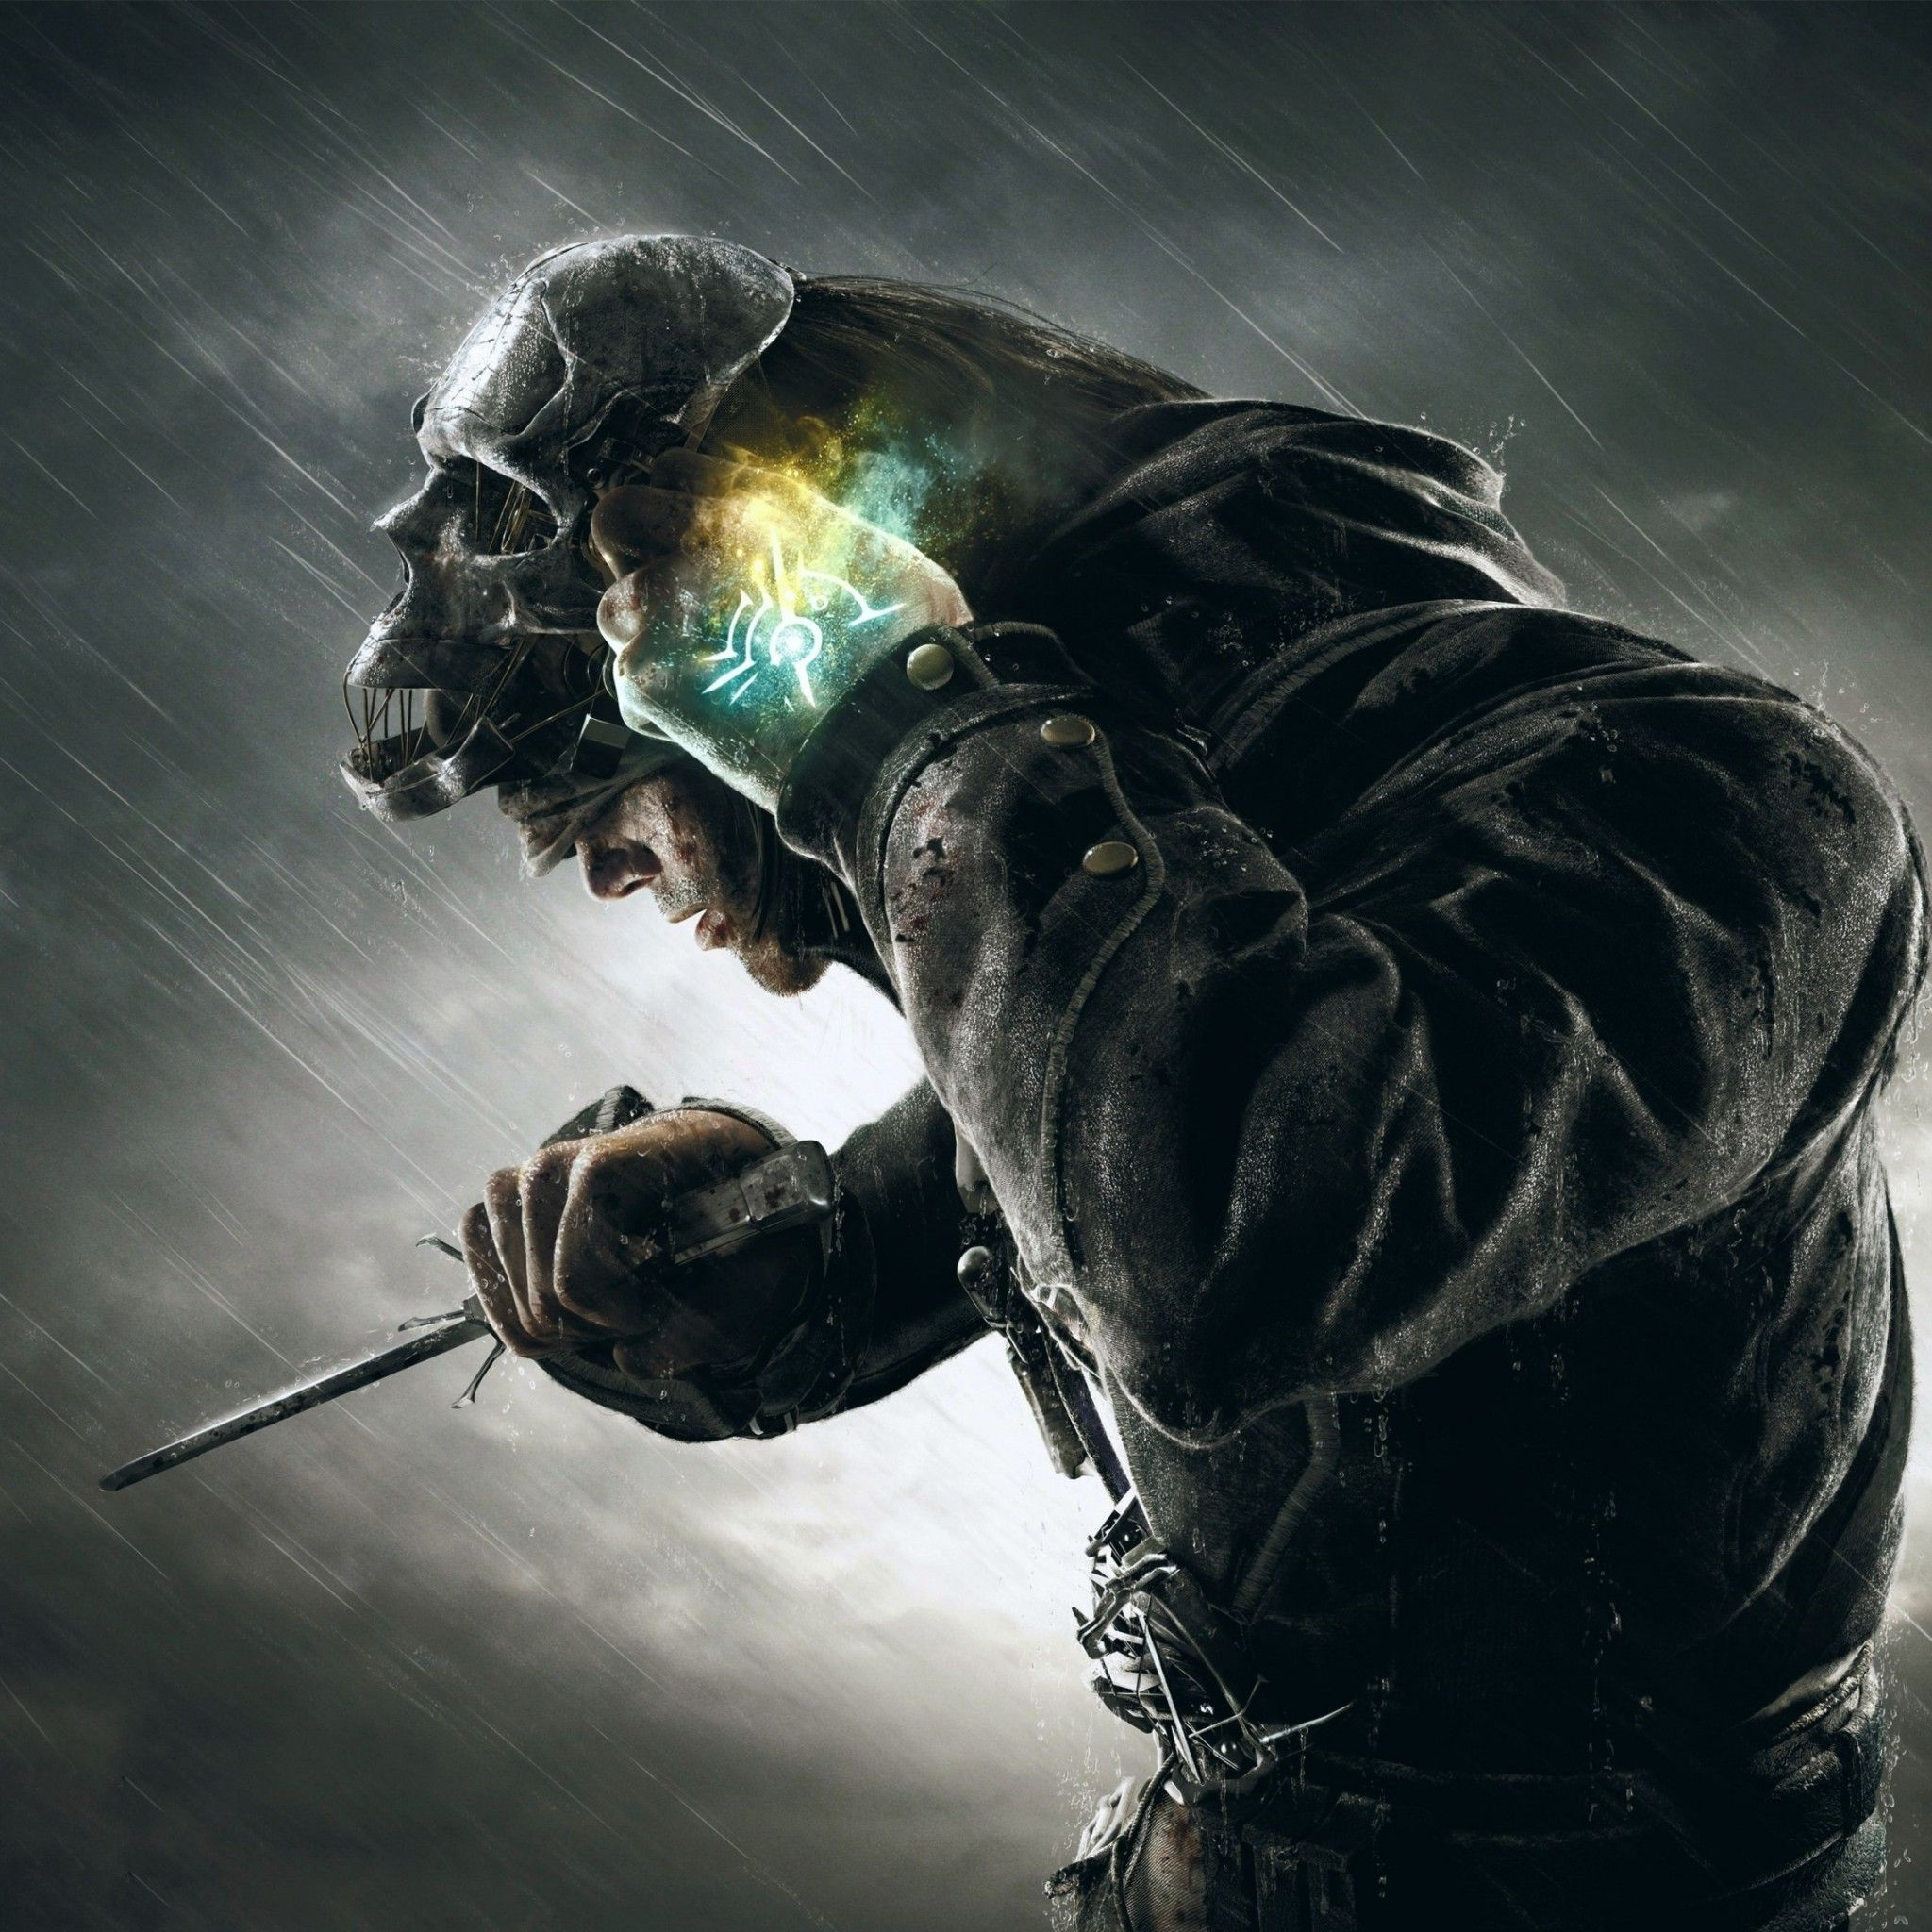 Dishonored Character Tap To See More Awesome Dishonored Wallpapers Mobile9 Dishonored Hd Wallpaper 4k Dishonored Mask